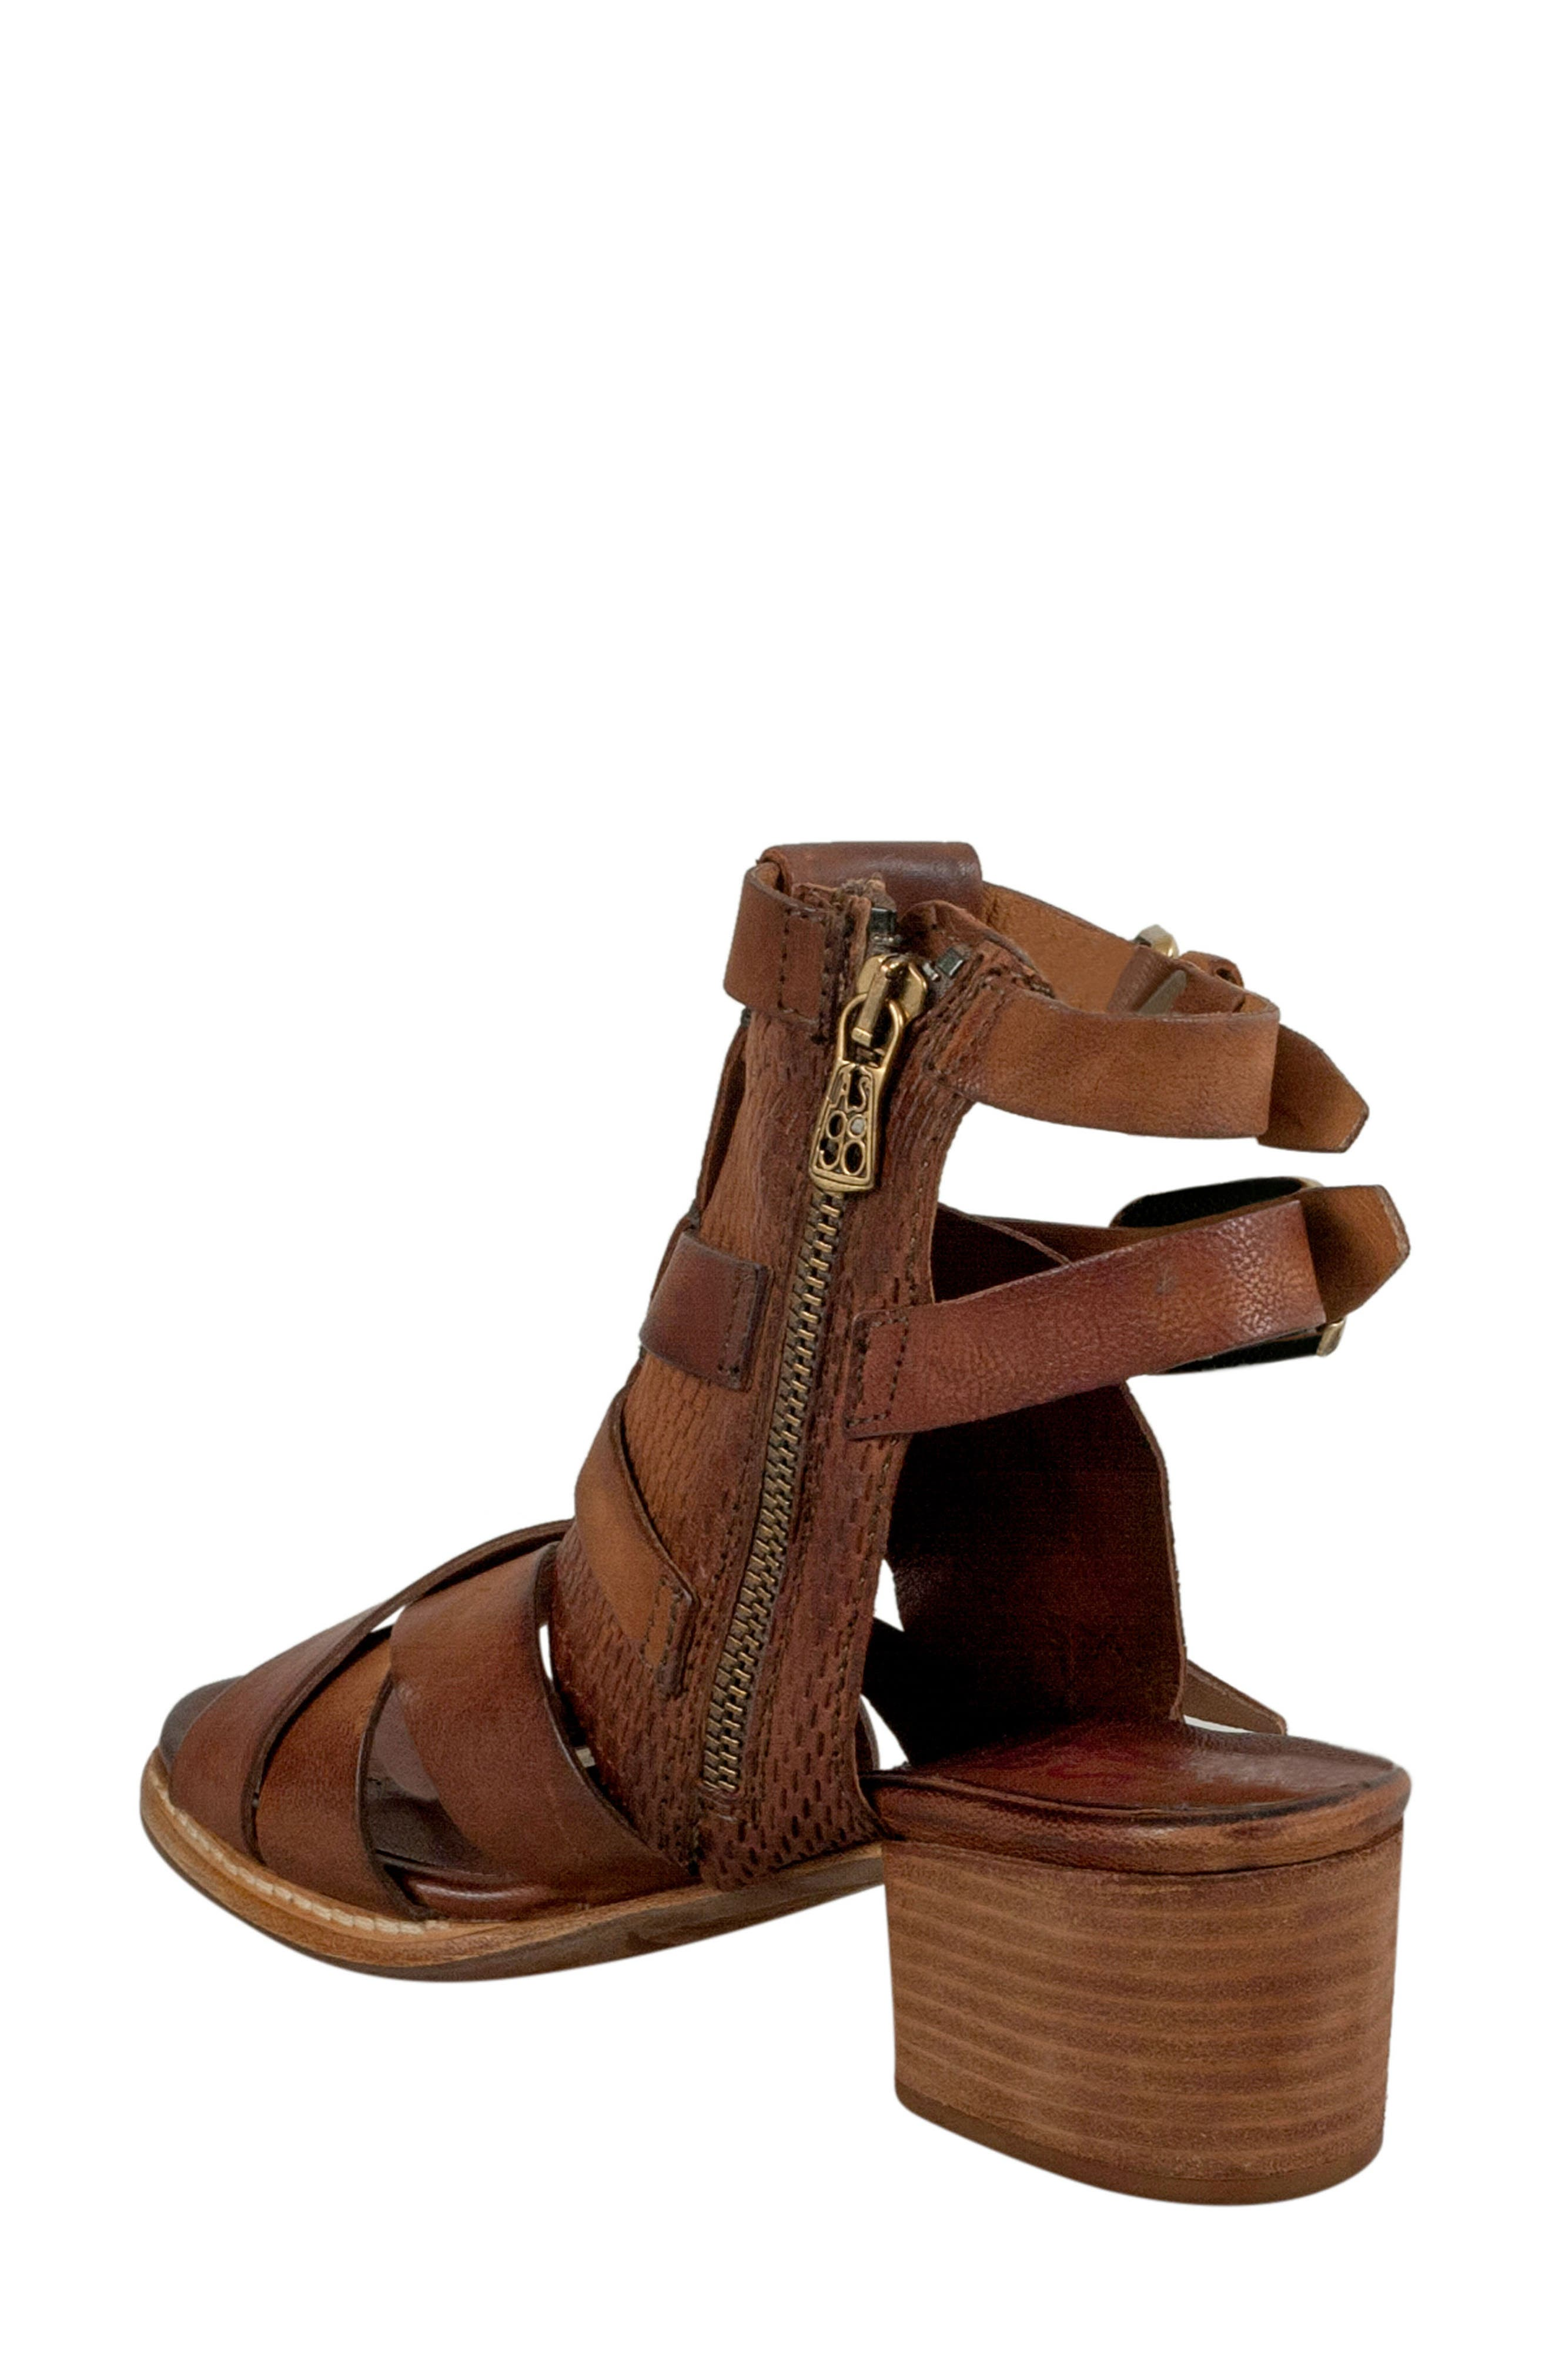 Pennie Gladiator Sandal,                             Alternate thumbnail 2, color,                             Cognac